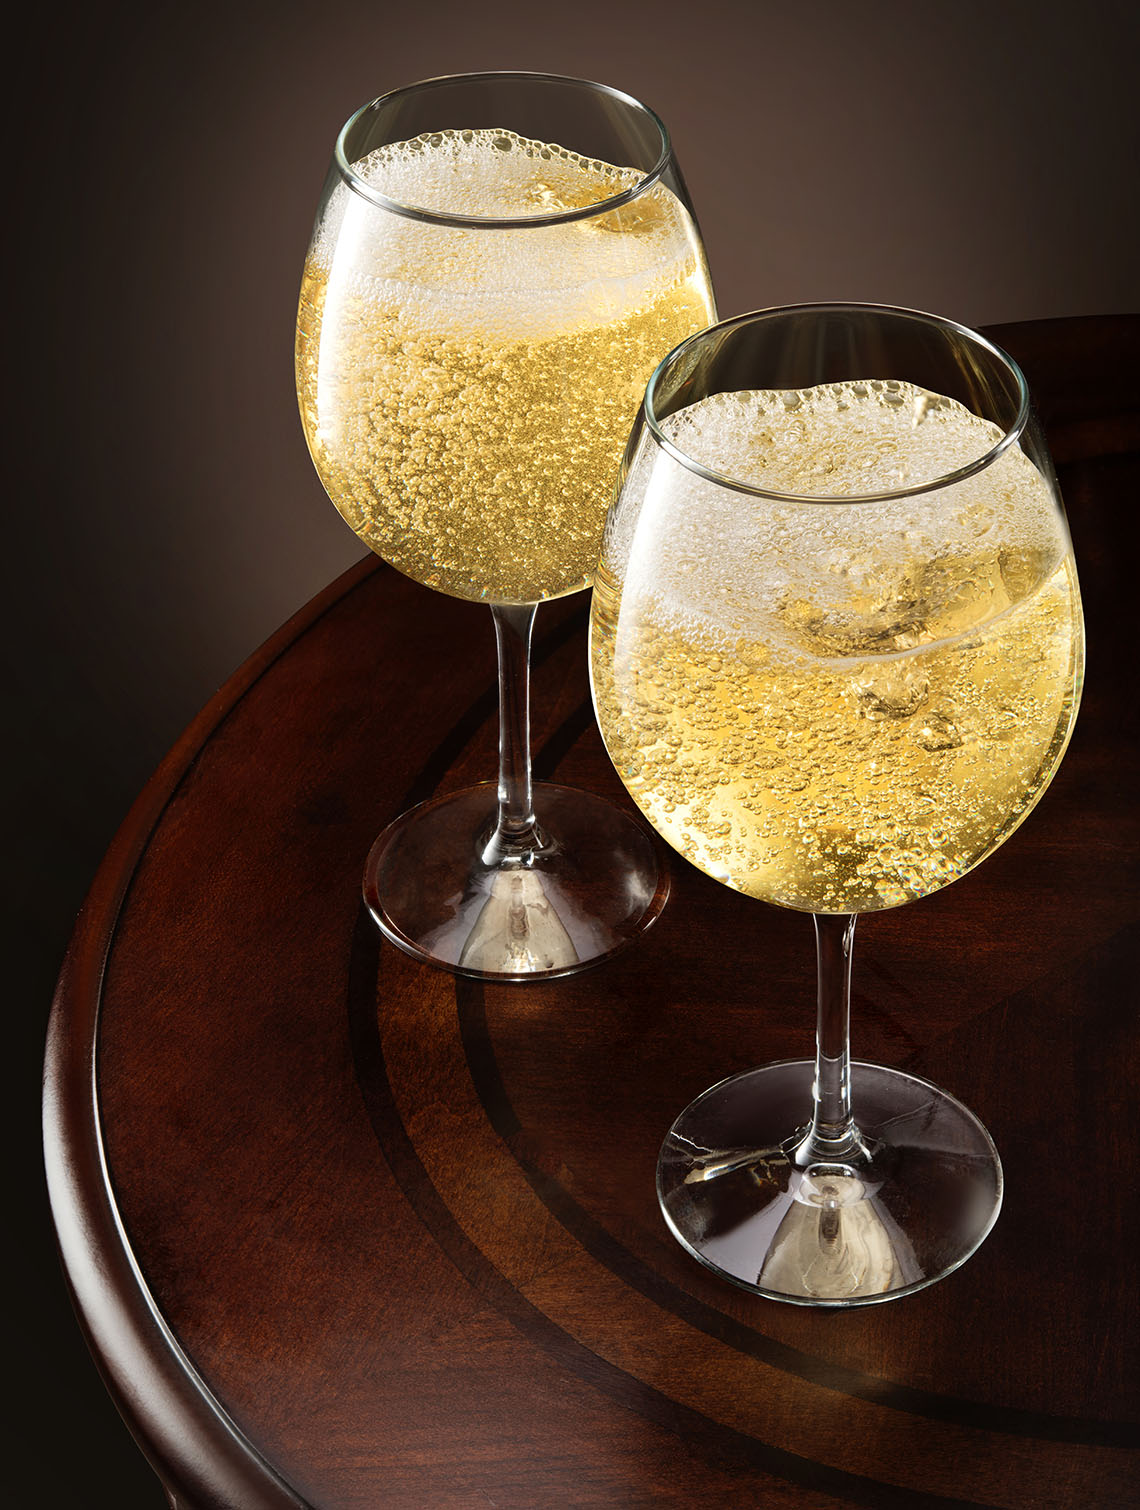 New-york-liquid-photography-new-york-drink-photographer-champaign-glasses